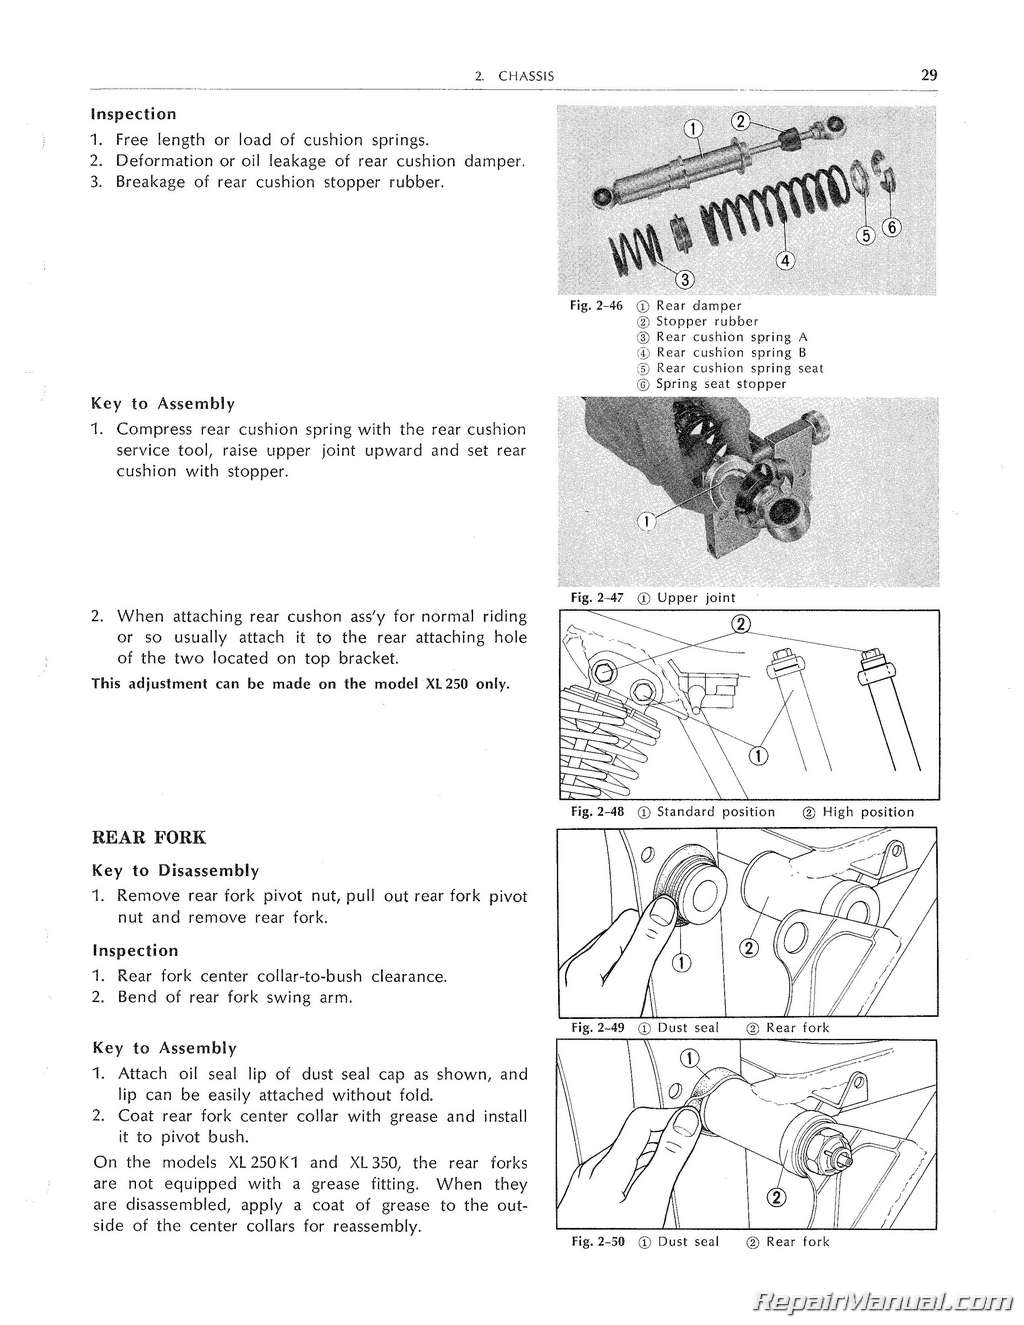 Honda XL250 XL350 Motorcycle Service Manual 1972 – 1978